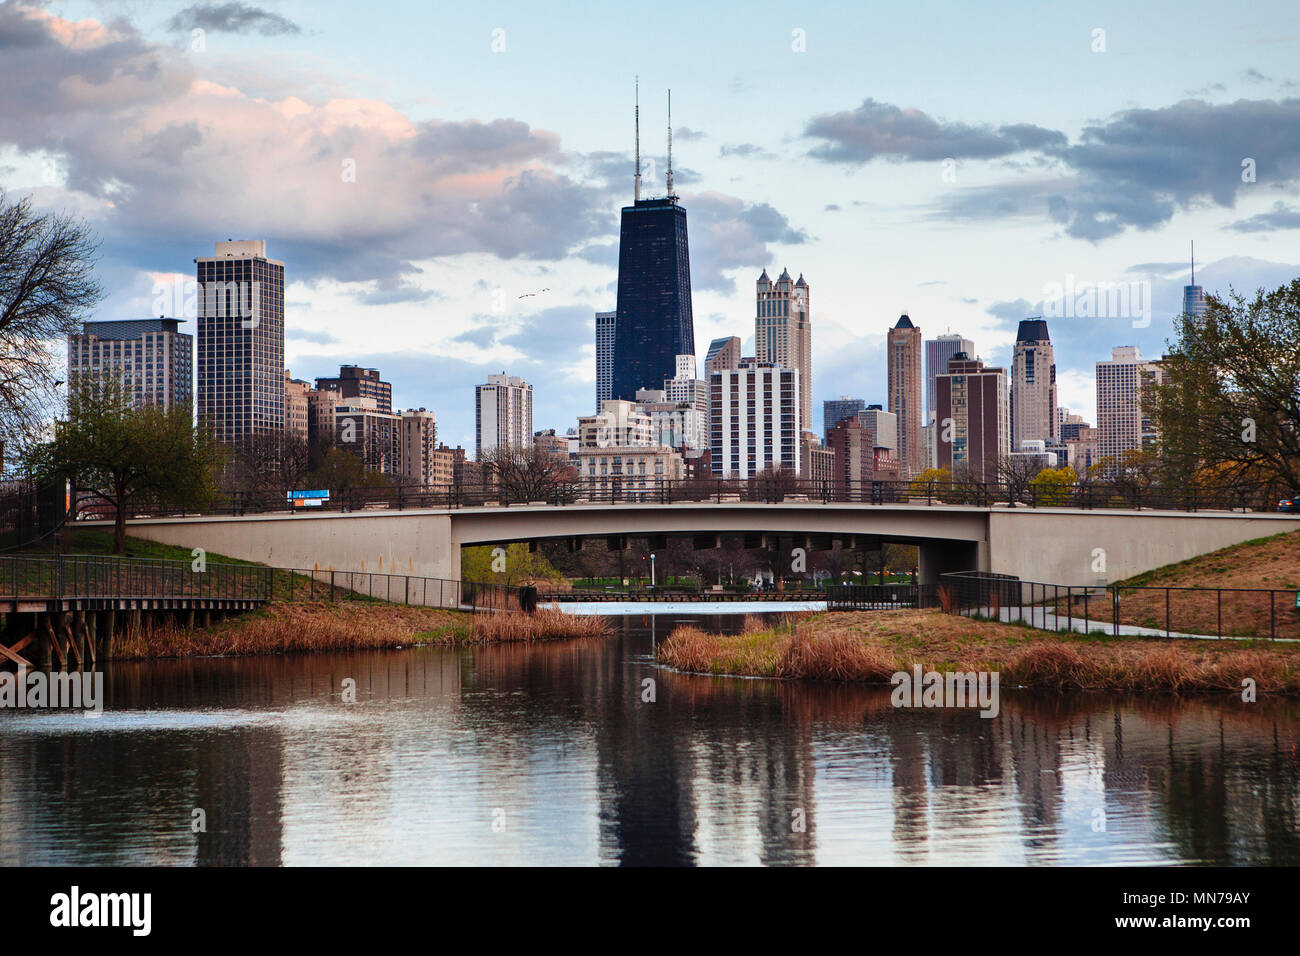 South pond pavilion view of the Chicago, Illinois skyline in the late afternoon. - Stock Image